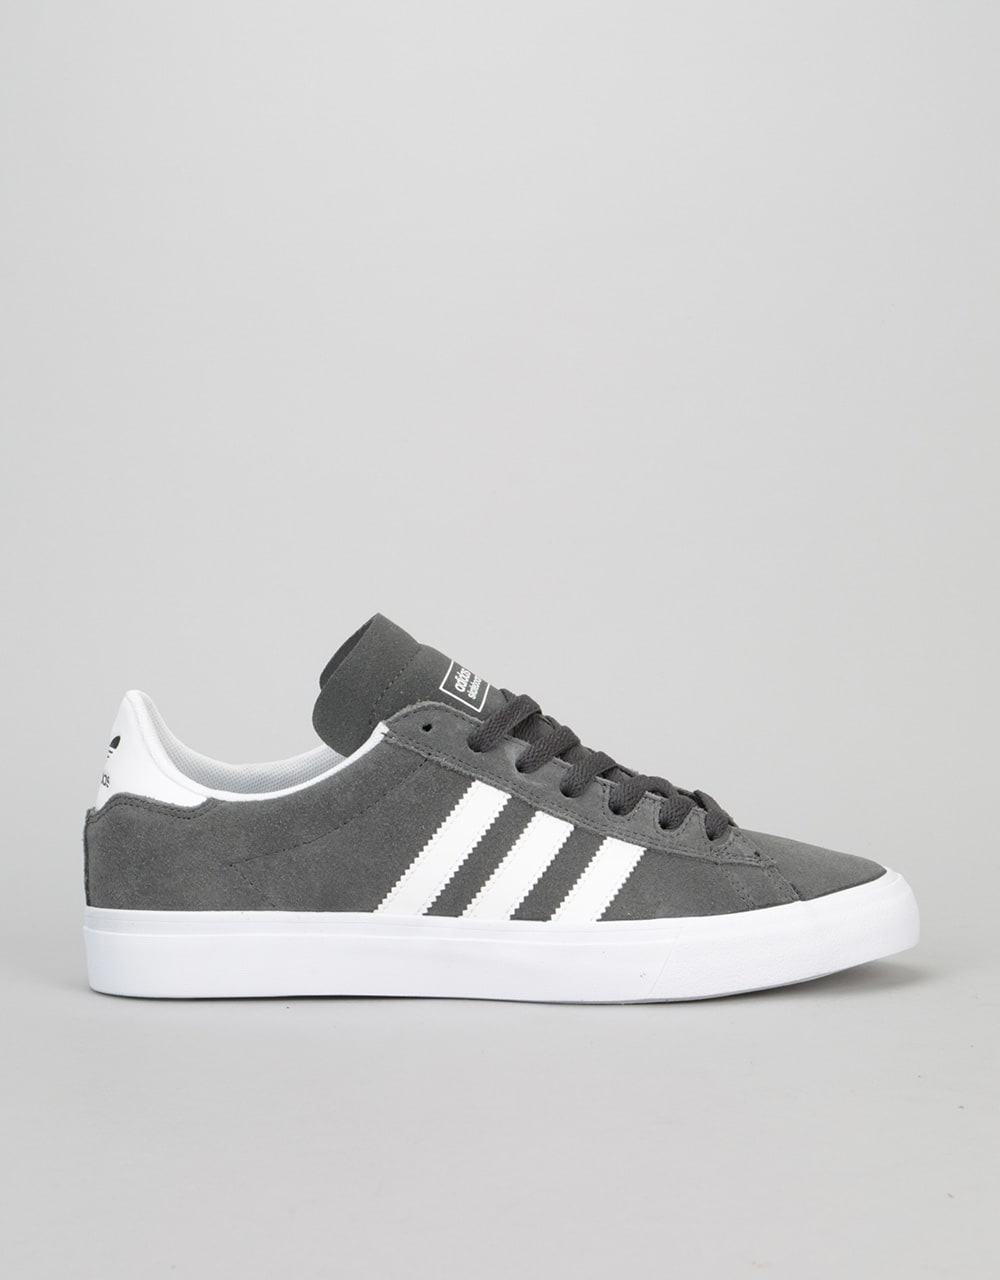 new arrival 2be70 34dd6 Adidas Campus Vulc II ADV Skate Shoe - Solid GreyWhiteWhite  Skate Shoes   Mens Skateboarding Trainers  Footwear  Route One